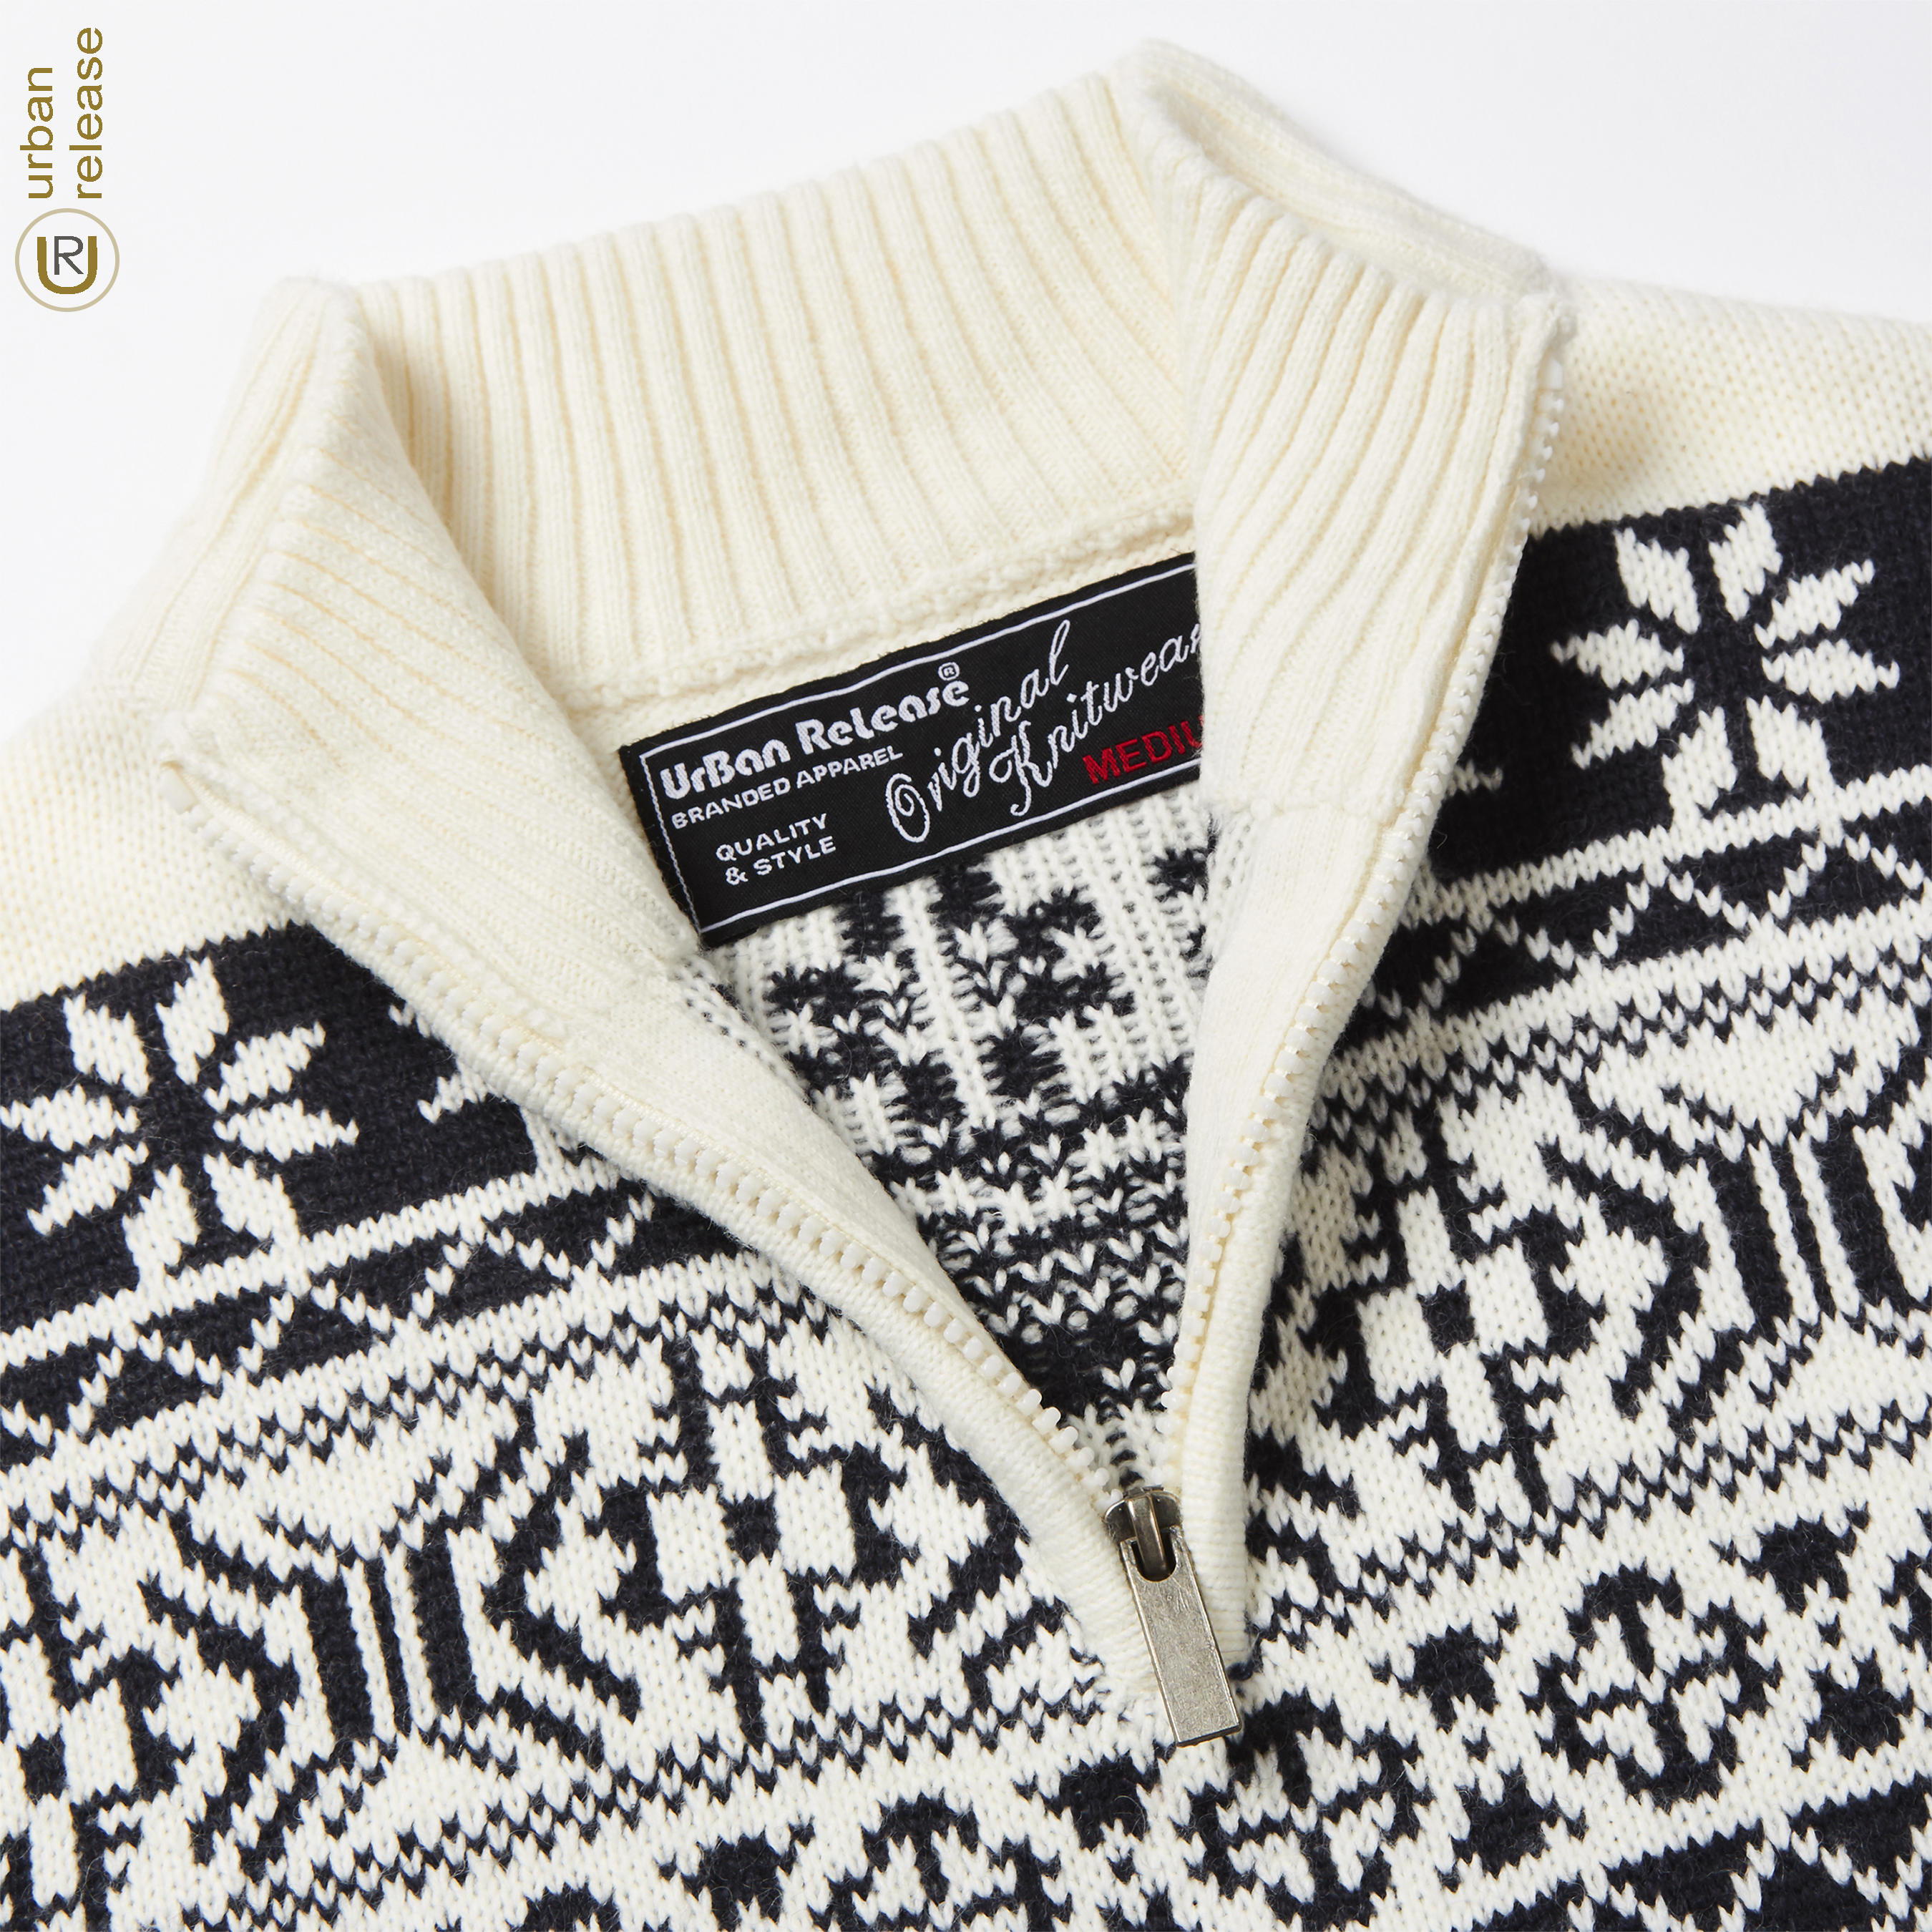 Homme-Tricot-1-4-Zip-Fermeture-Eclair-Col-Pull-Fair-Isle-Pattern-Extra-Chaud-Pull-UK miniature 3